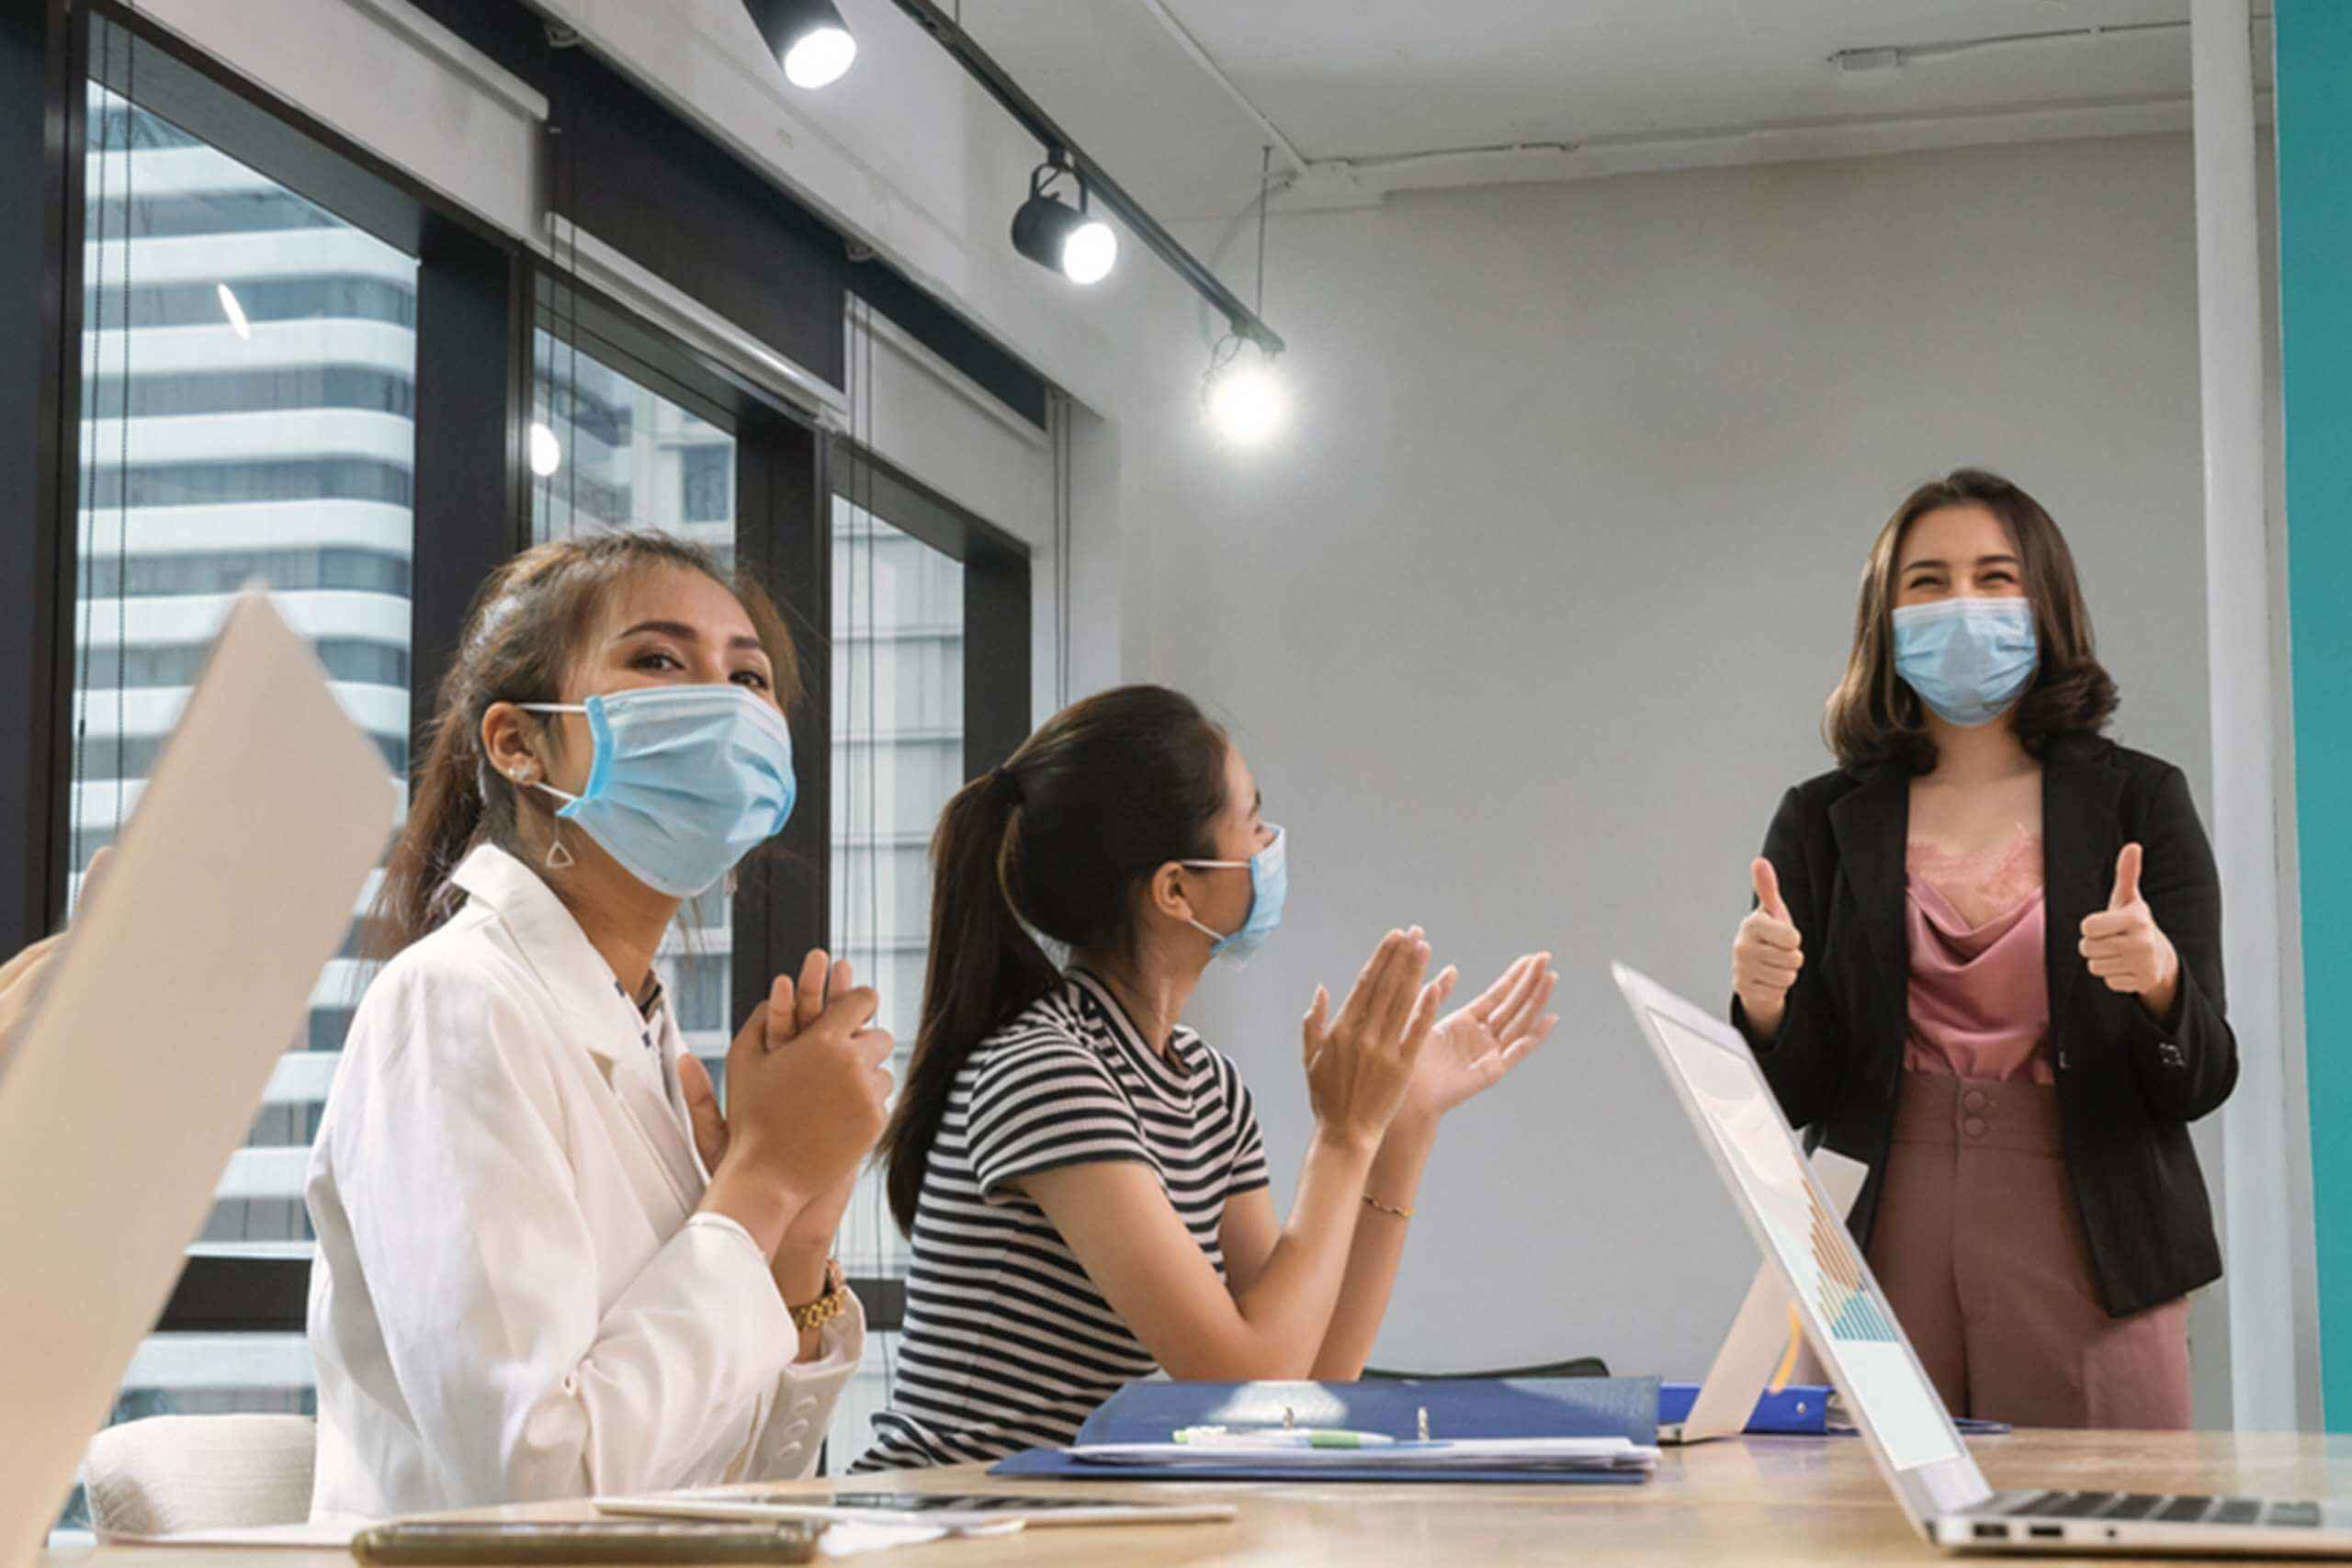 4 Tips to Prevent Infection in the Workplace